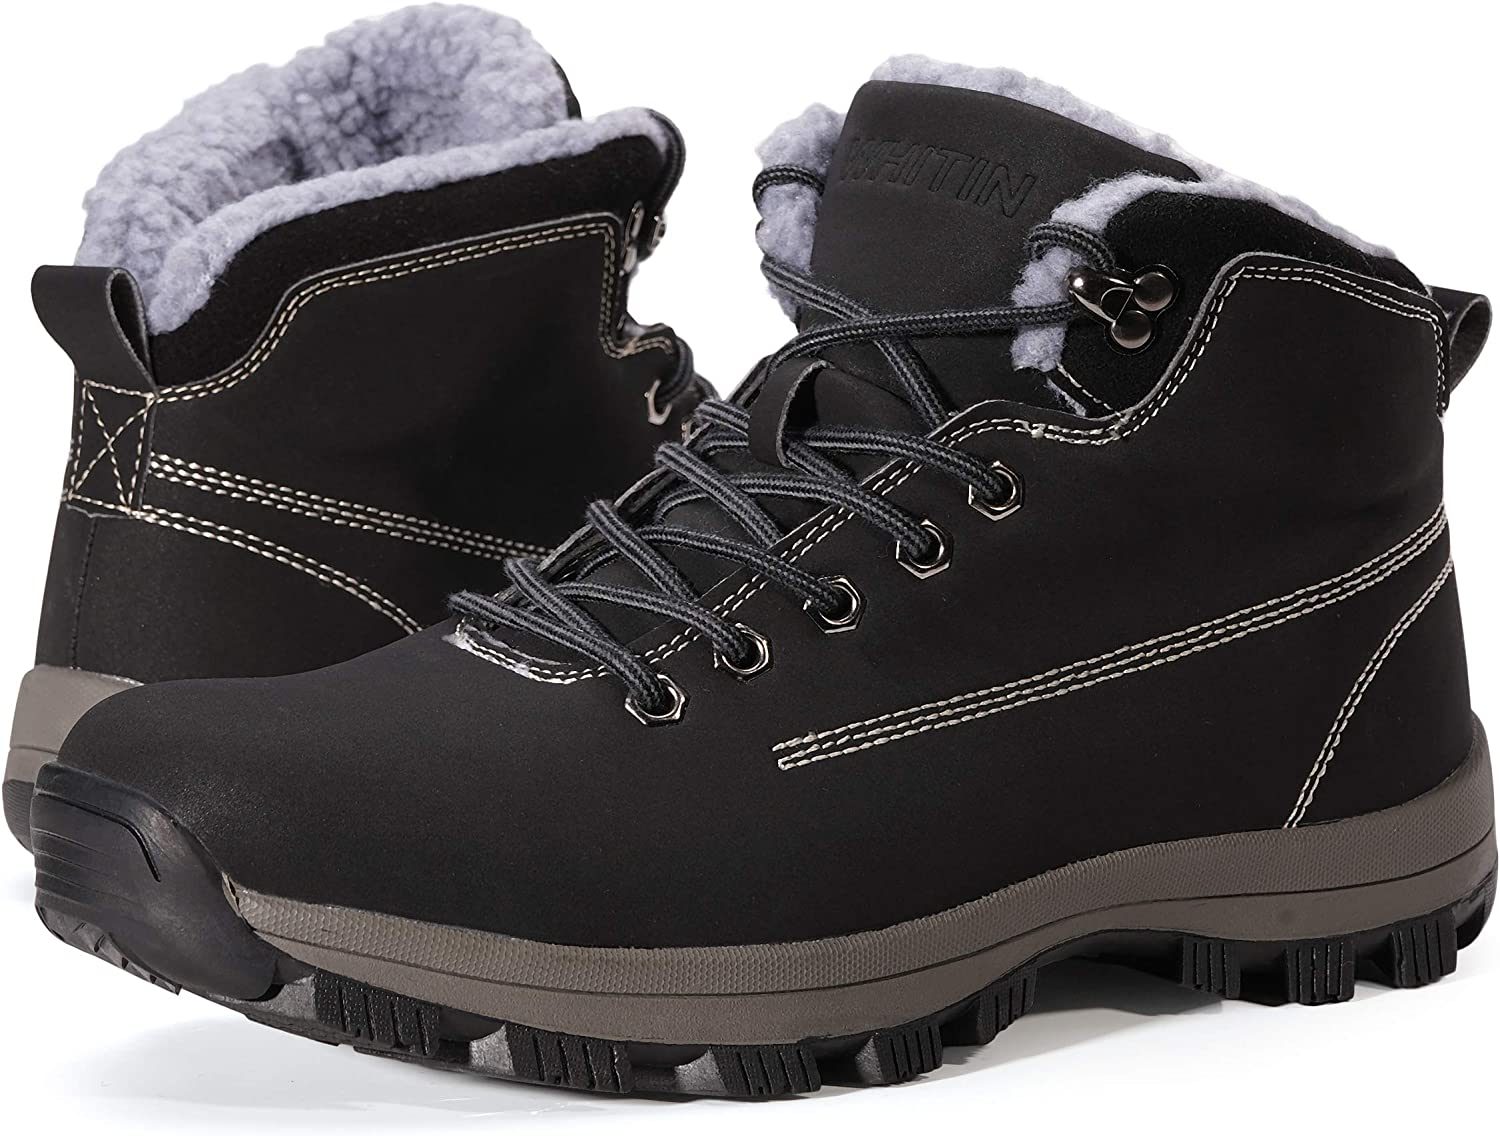 WHITIN Las Vegas Memphis Mall Mall Men's Waterproof Cold-Weather Boots